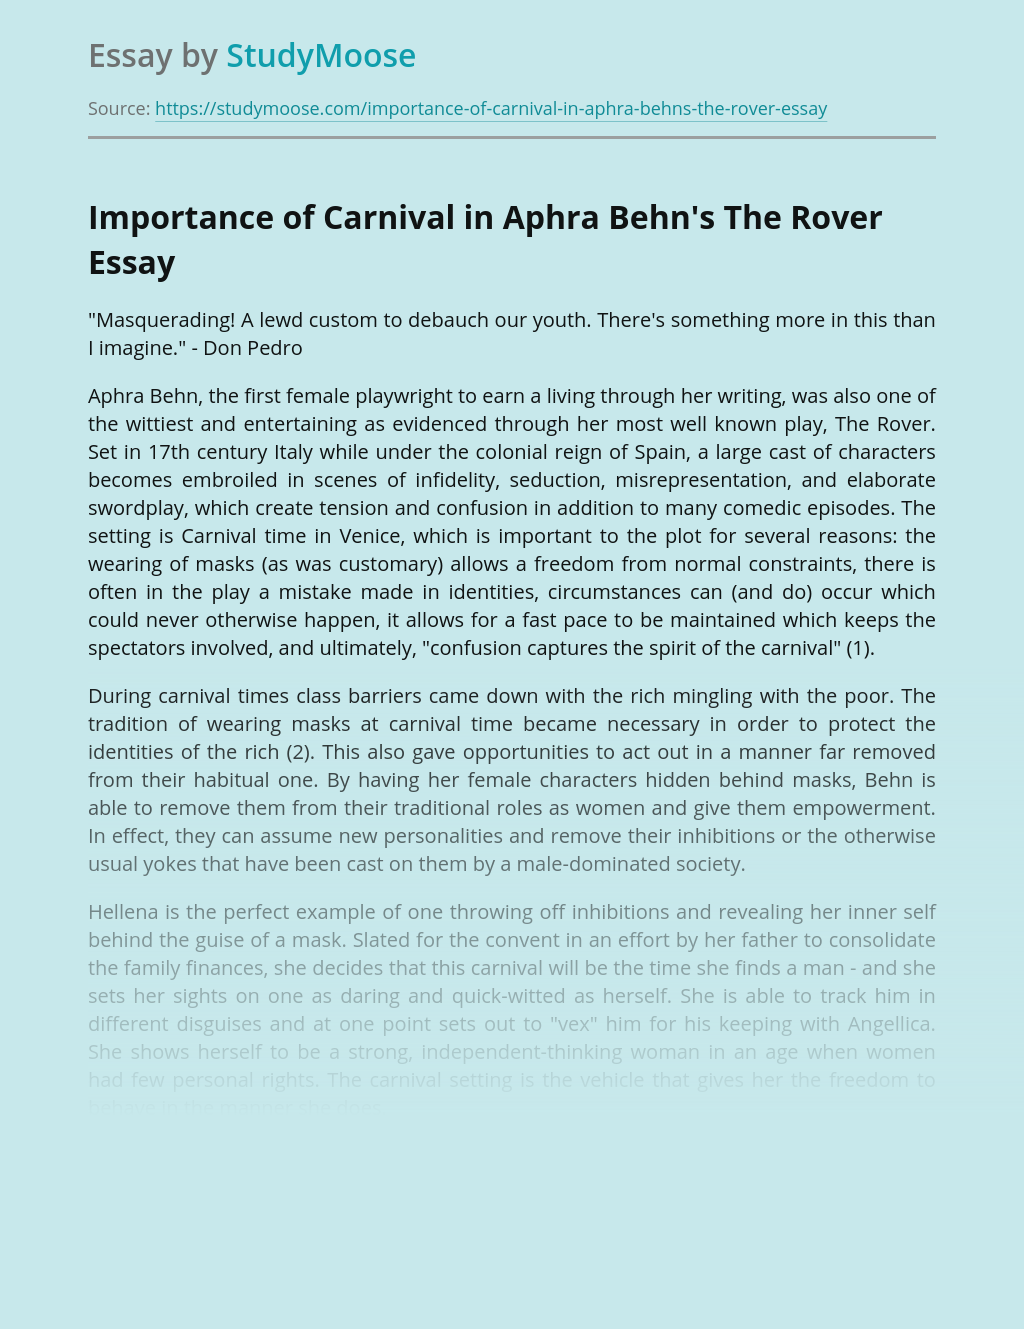 Importance of Carnival in Aphra Behn's The Rover